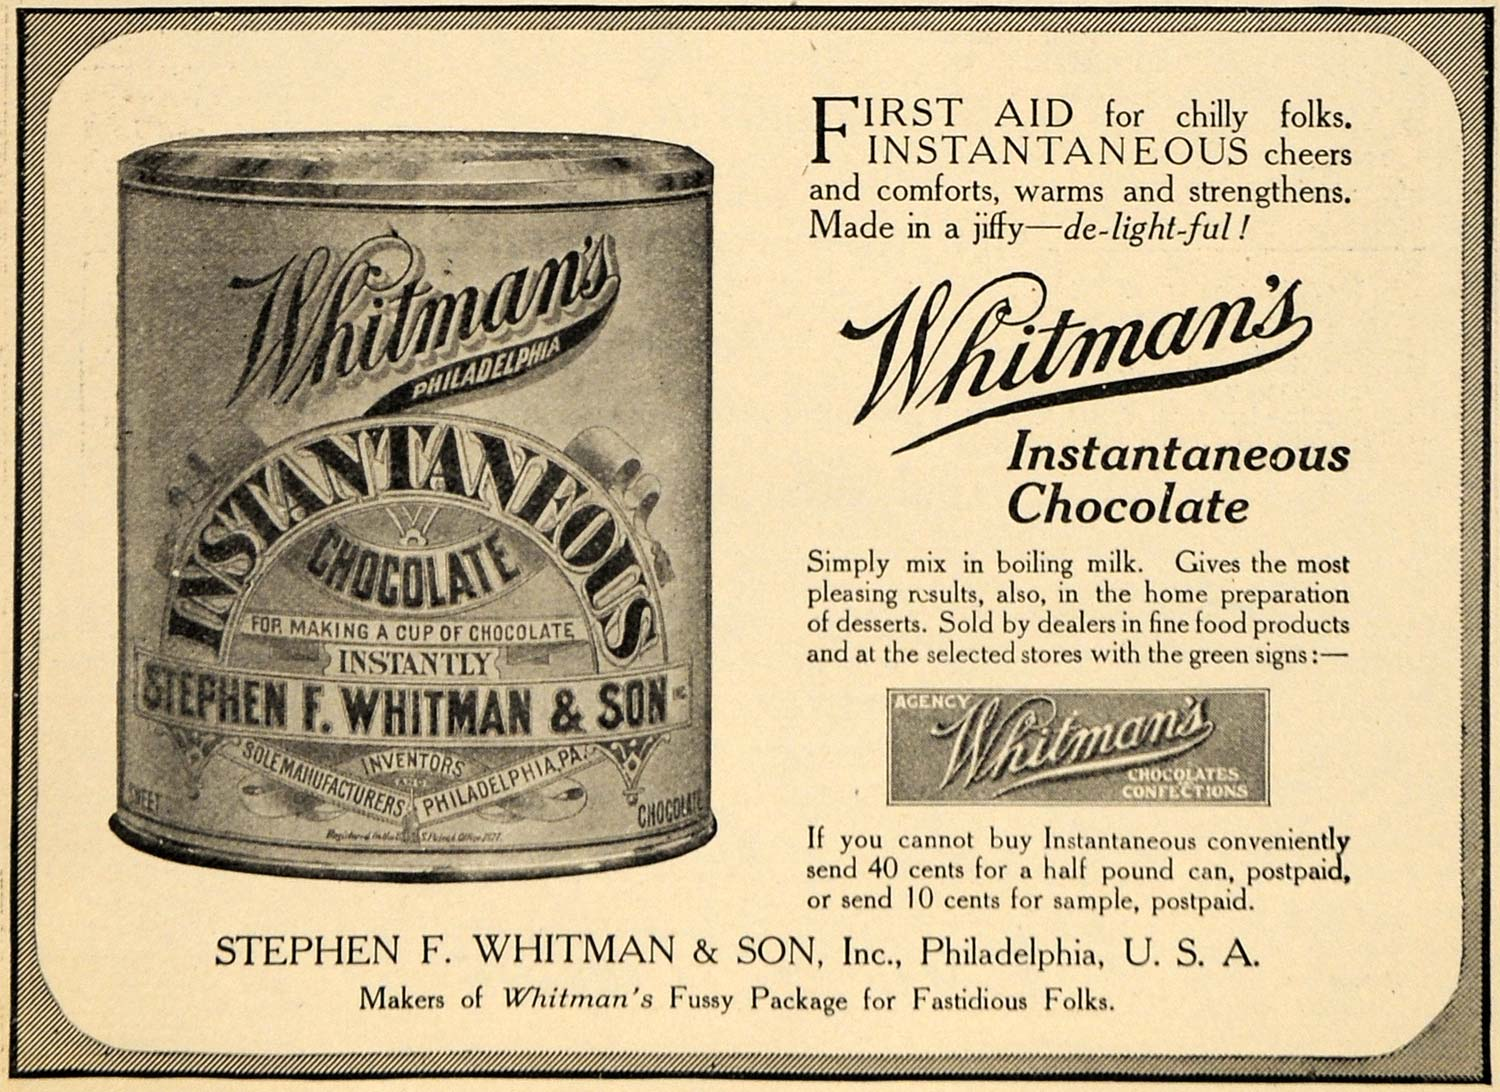 Whitman's Chocolate